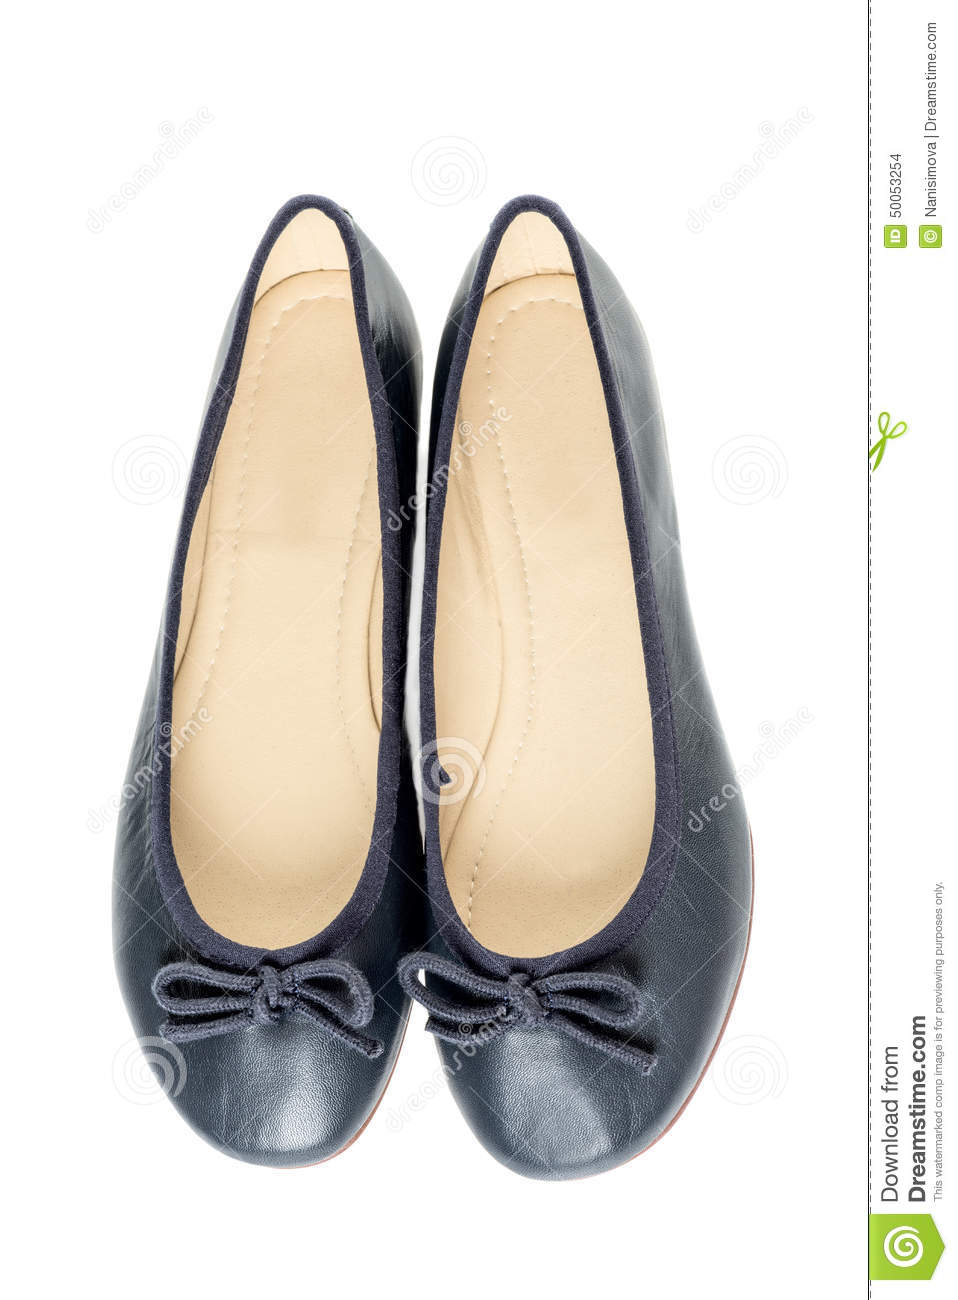 85633c844 Pair of female shoes over white background. More similar stock images